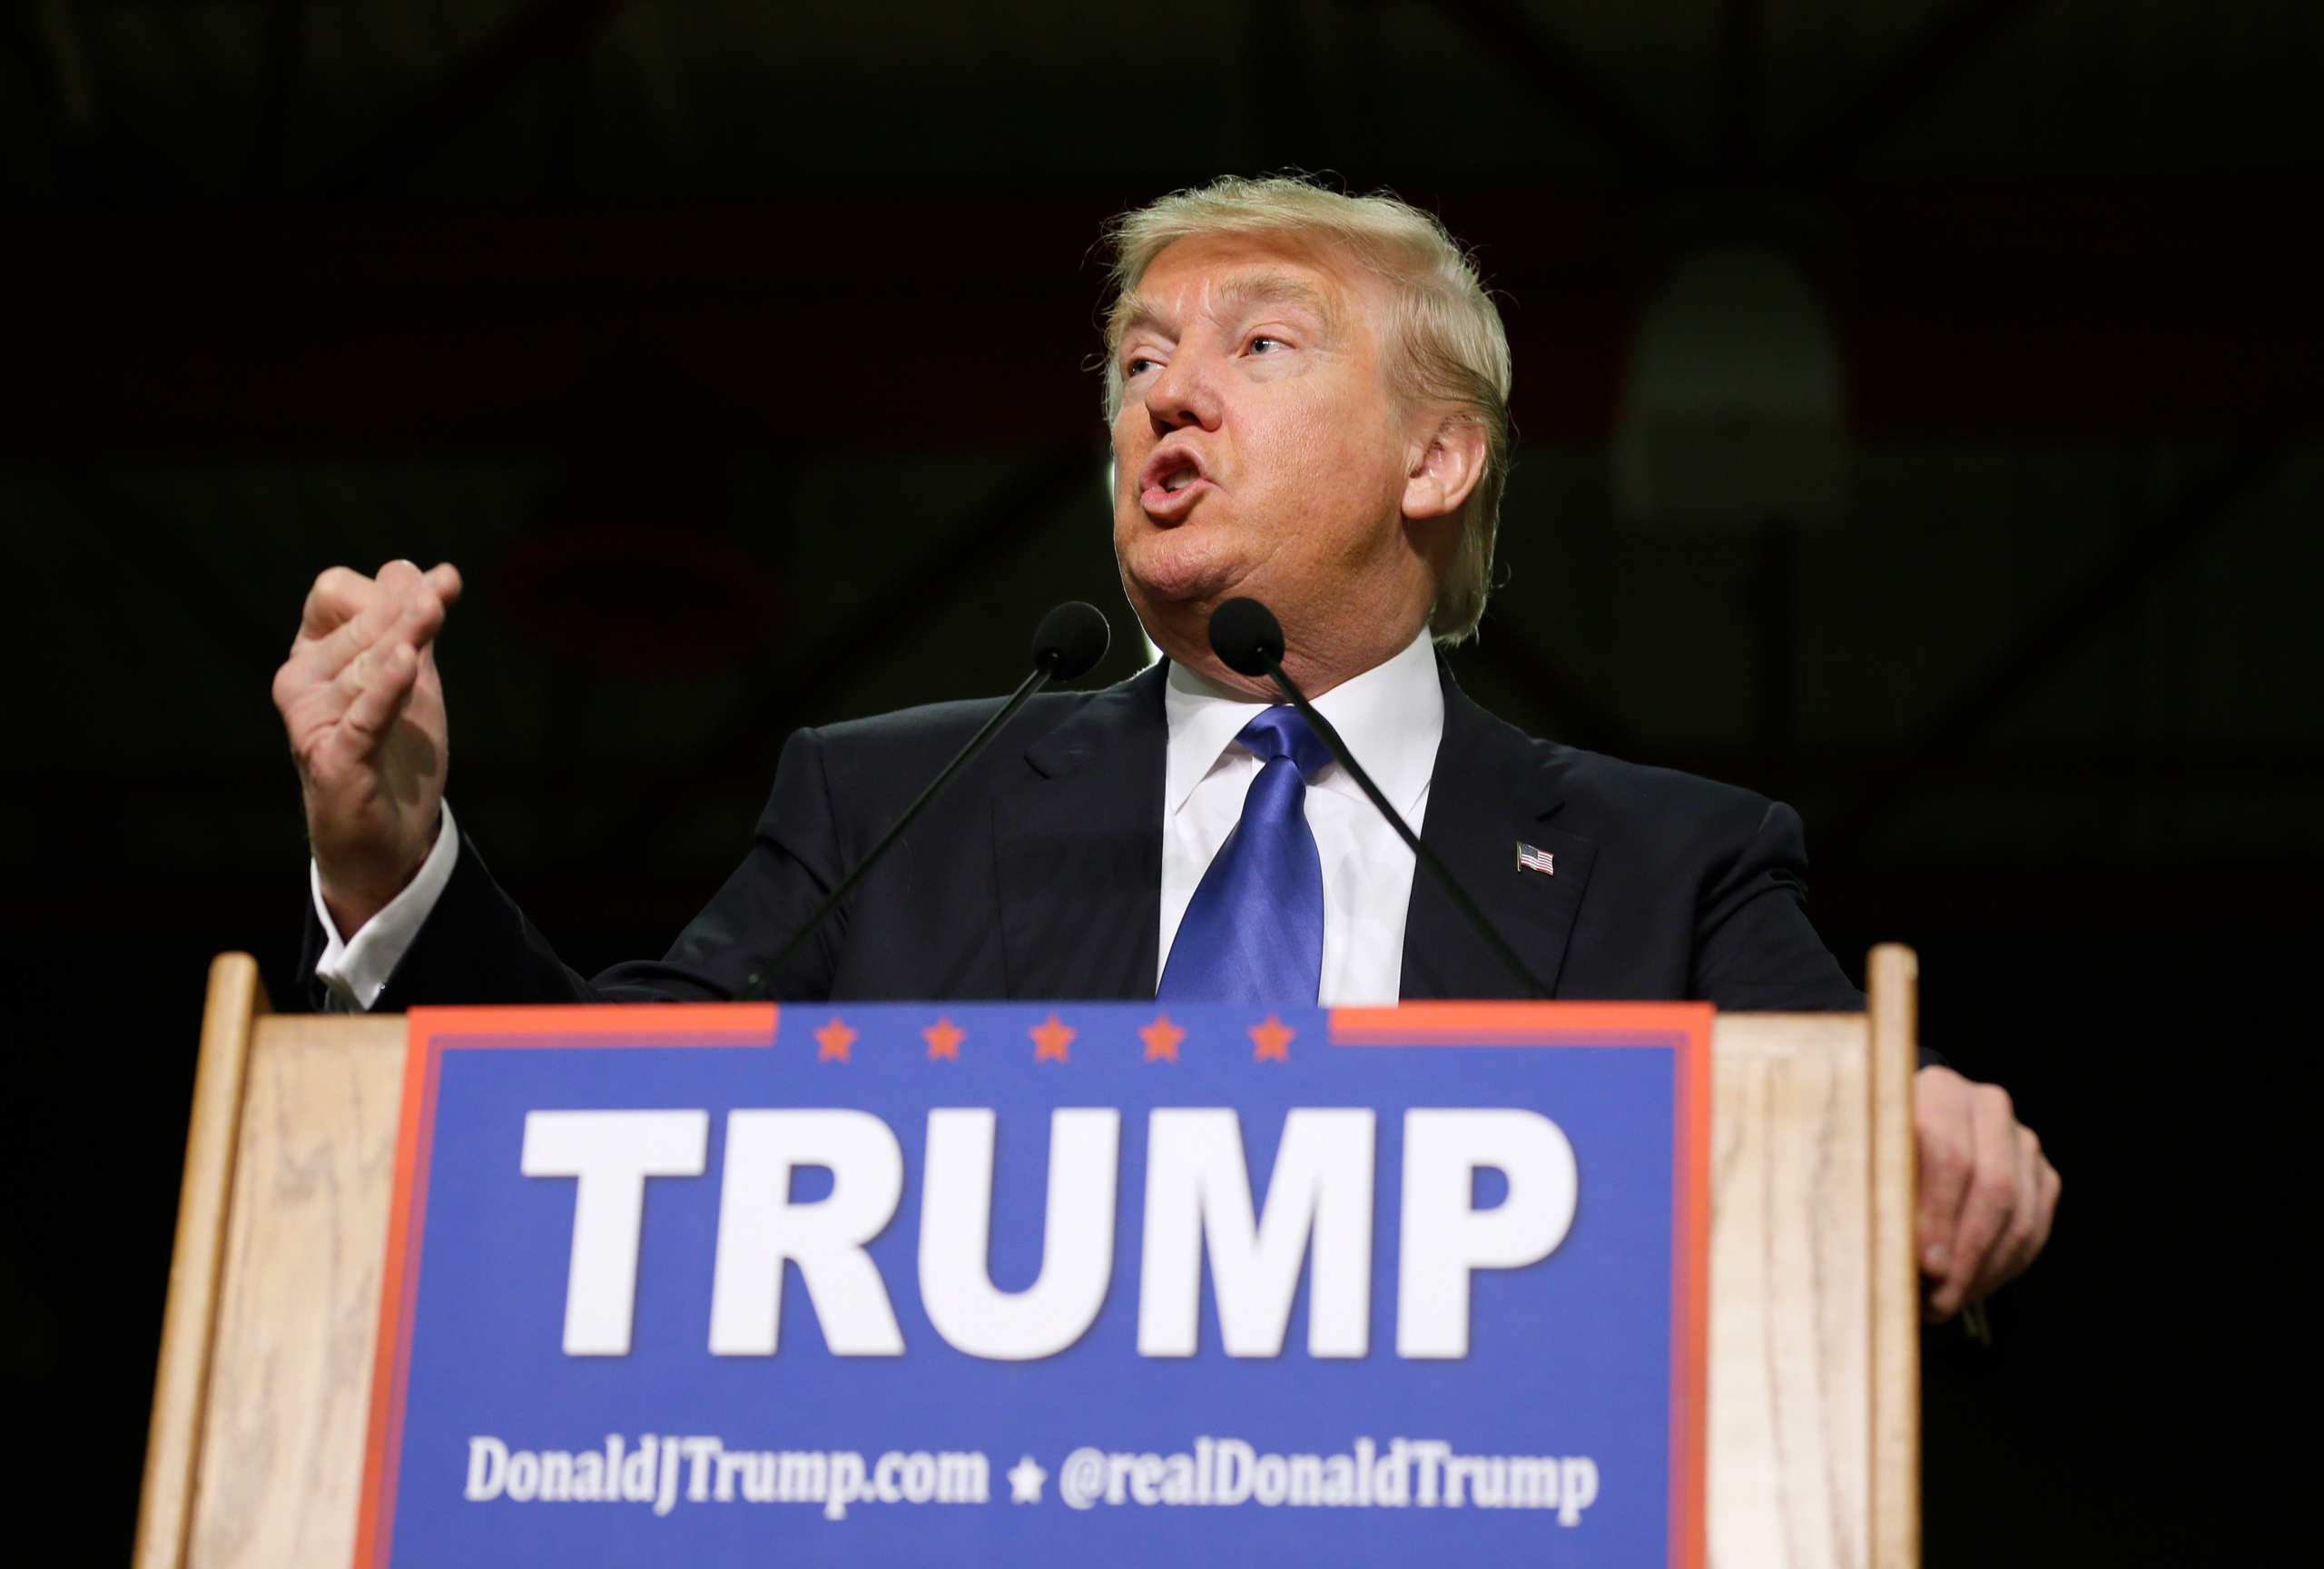 Donald Trump speaks during a campaign rally at Clinton Middle School in Clinton, Iowa, on Jan. 30, 2016.